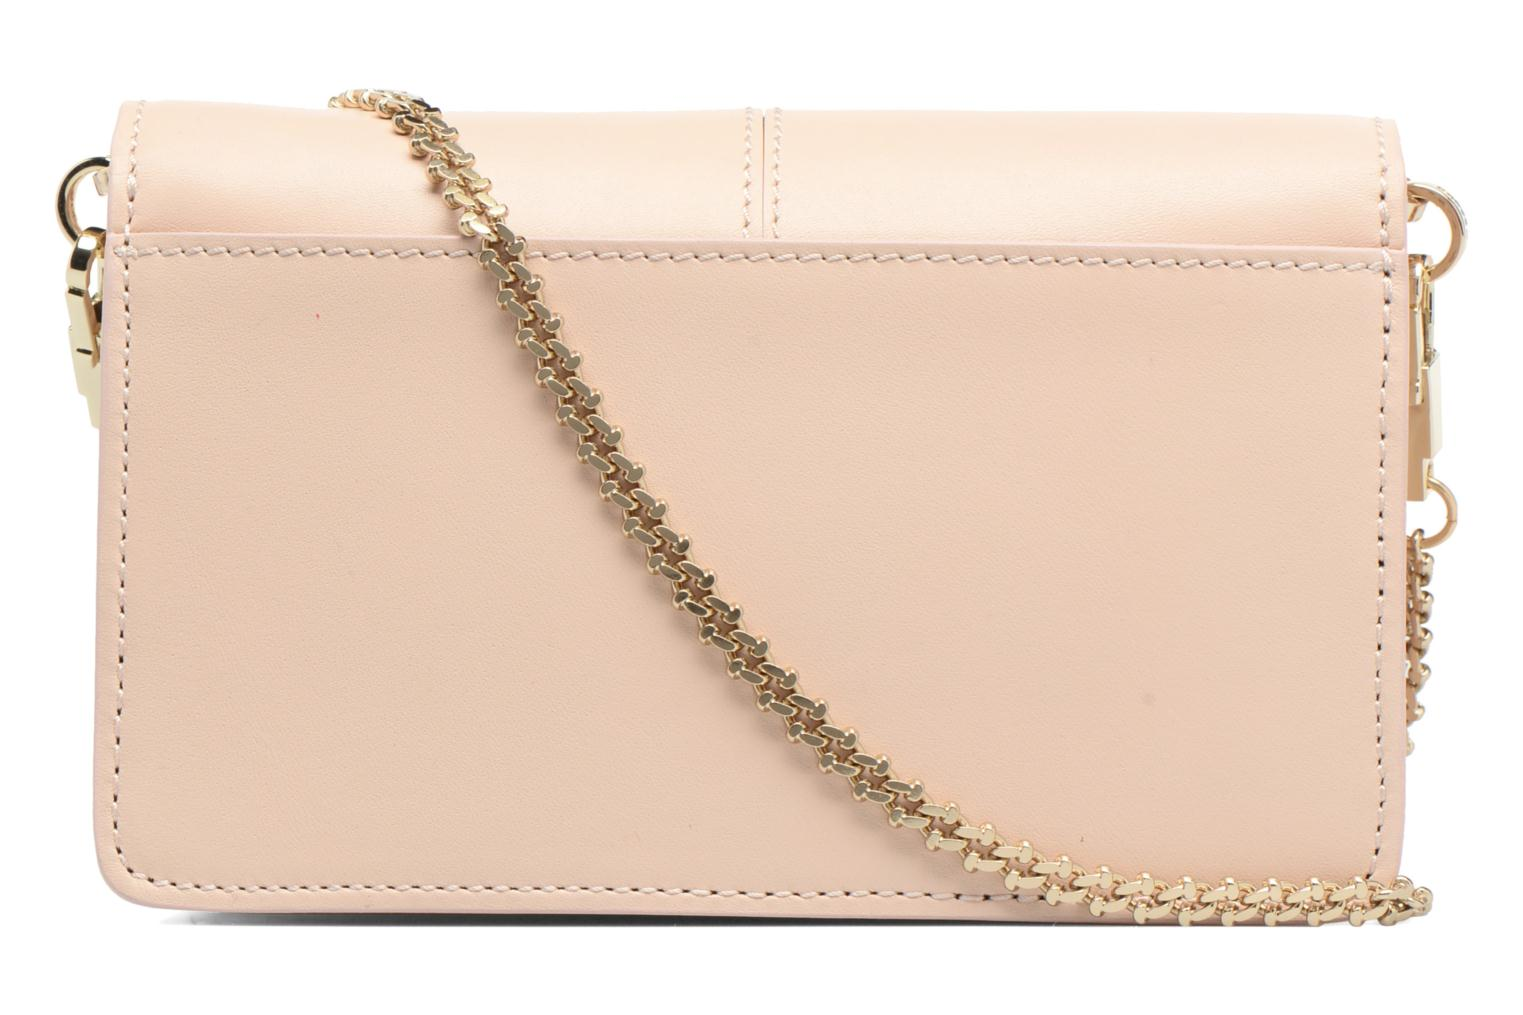 FULLJOY Evening bag Nude